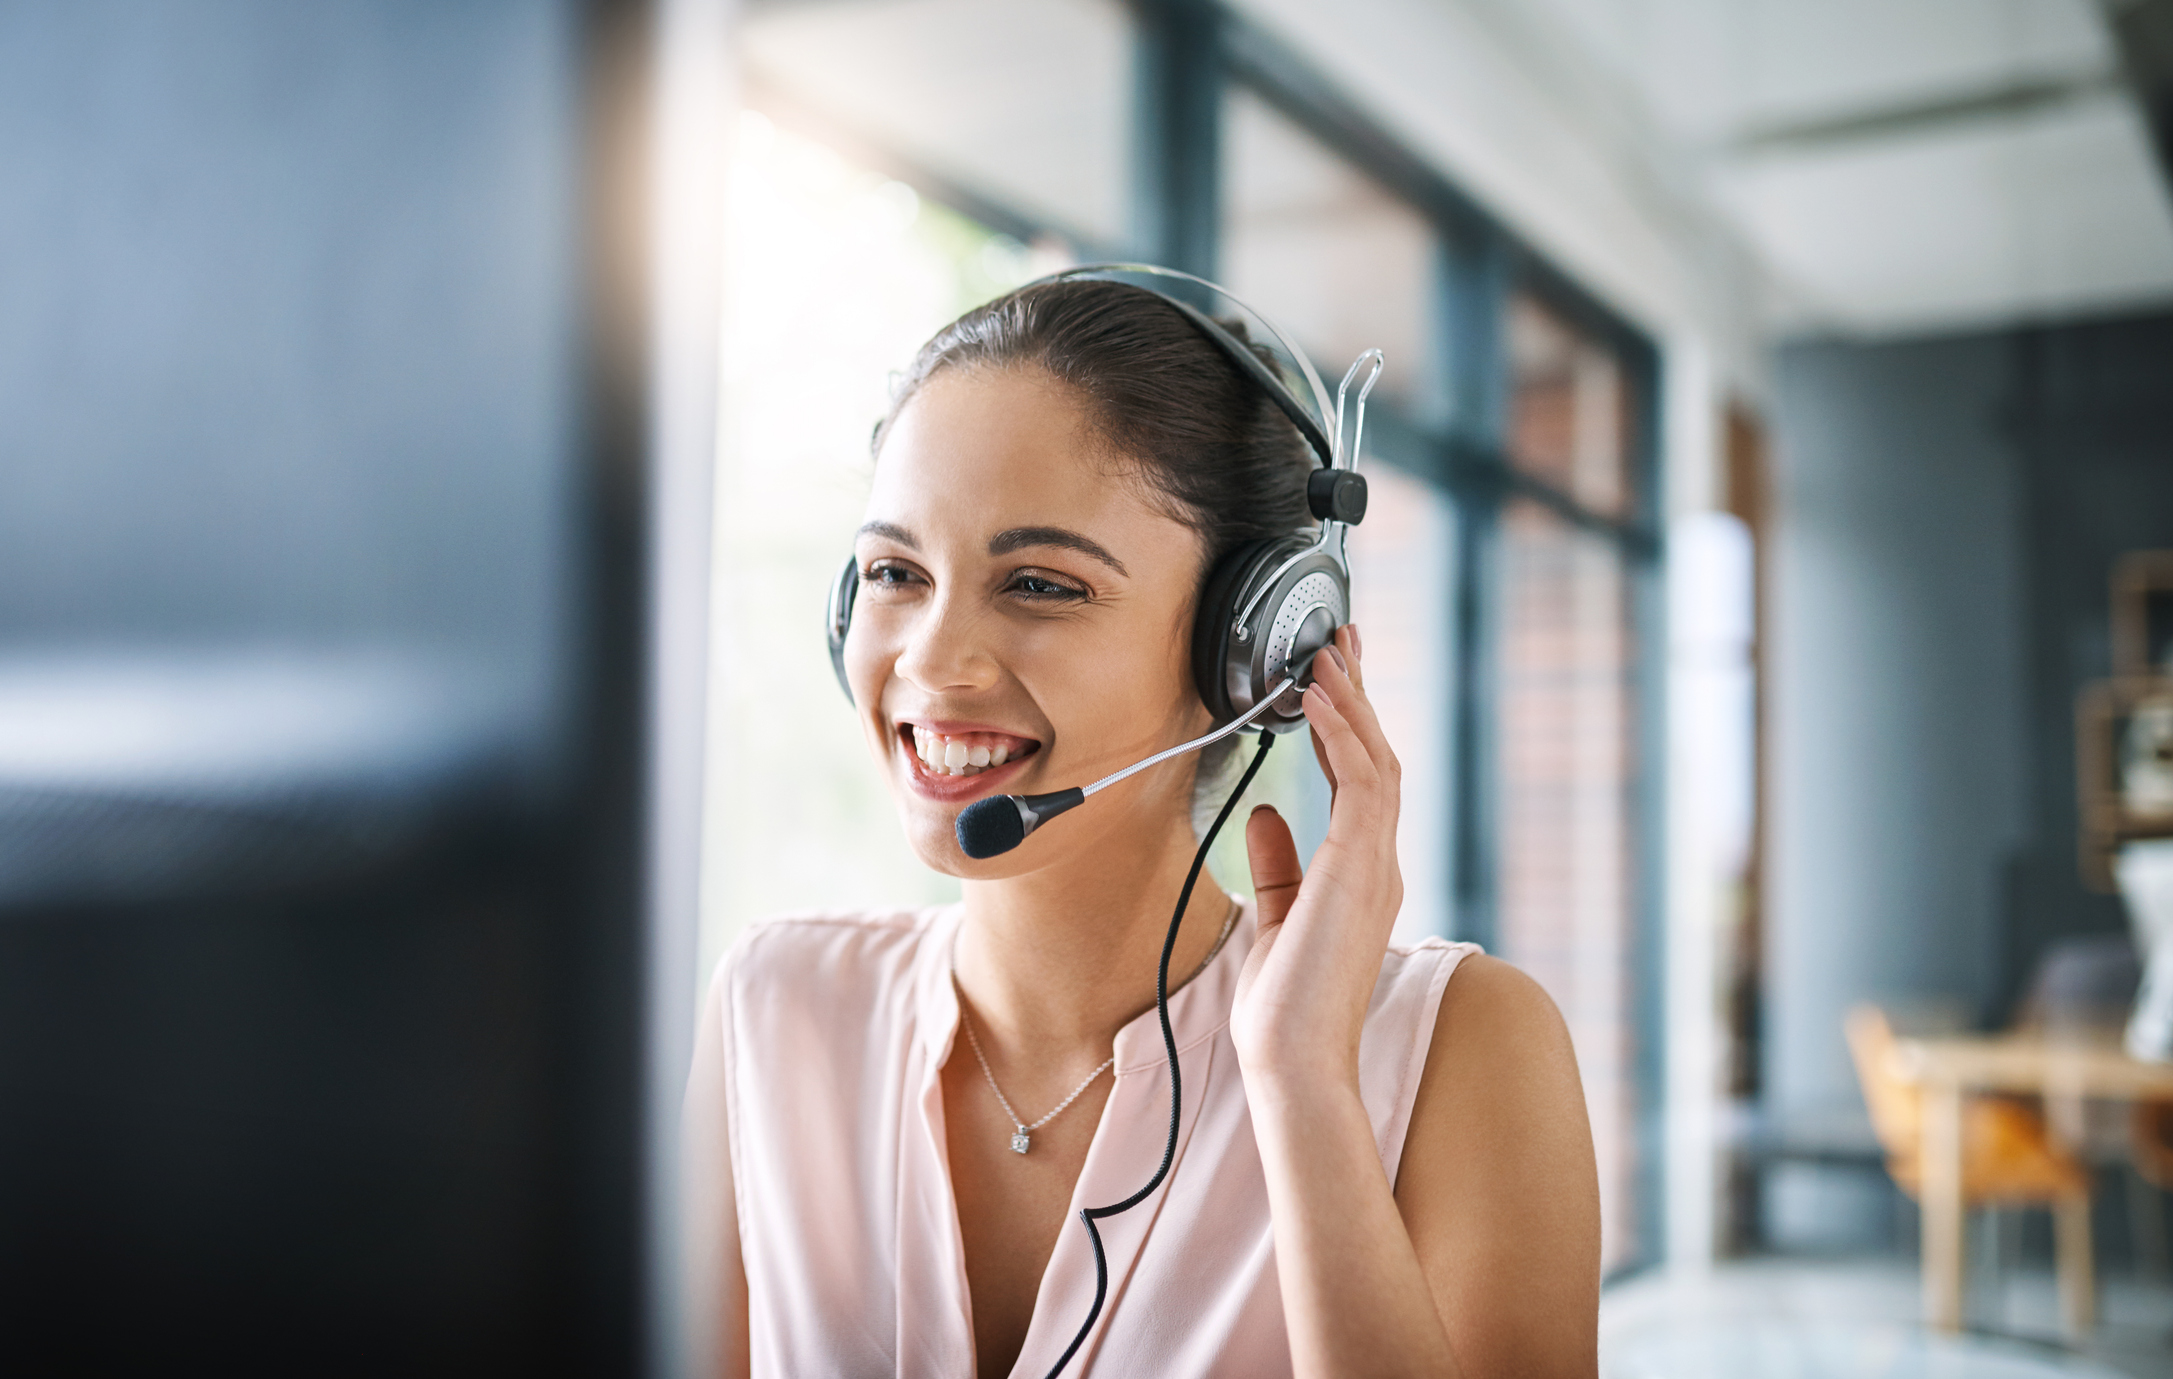 Female customer care representative with headset